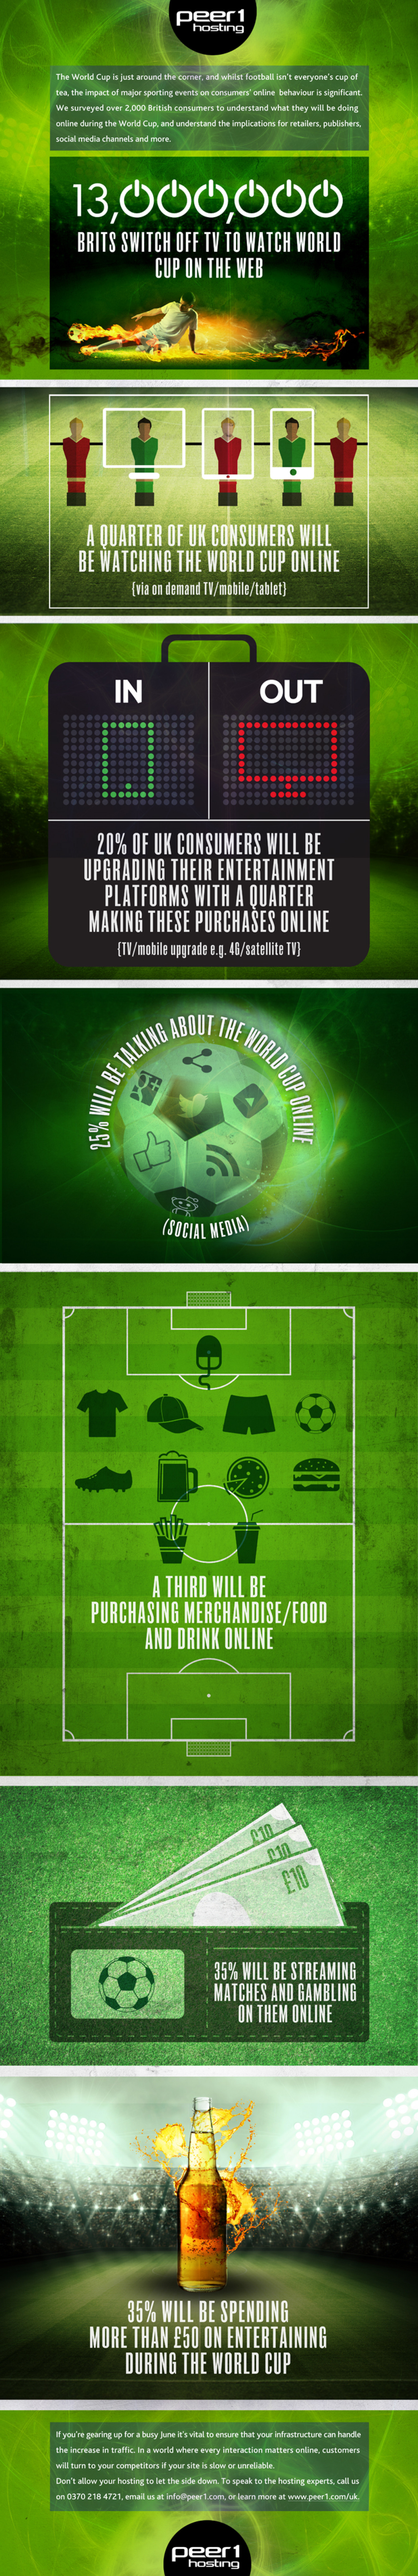 The Impact of The World Cup Online Infographic